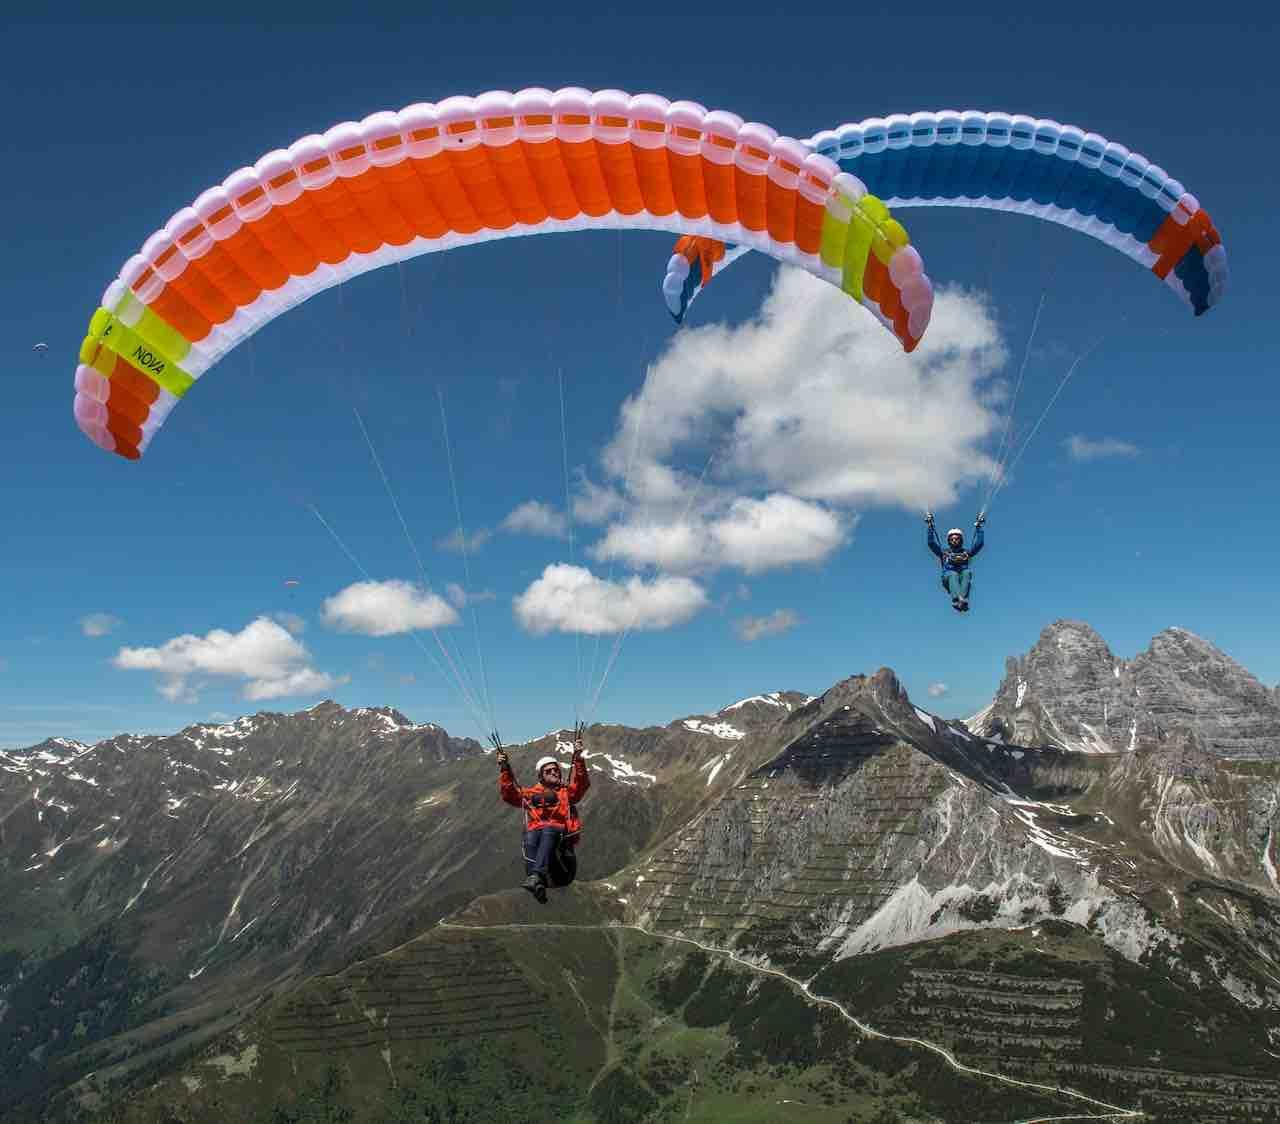 New design Nova paragliders